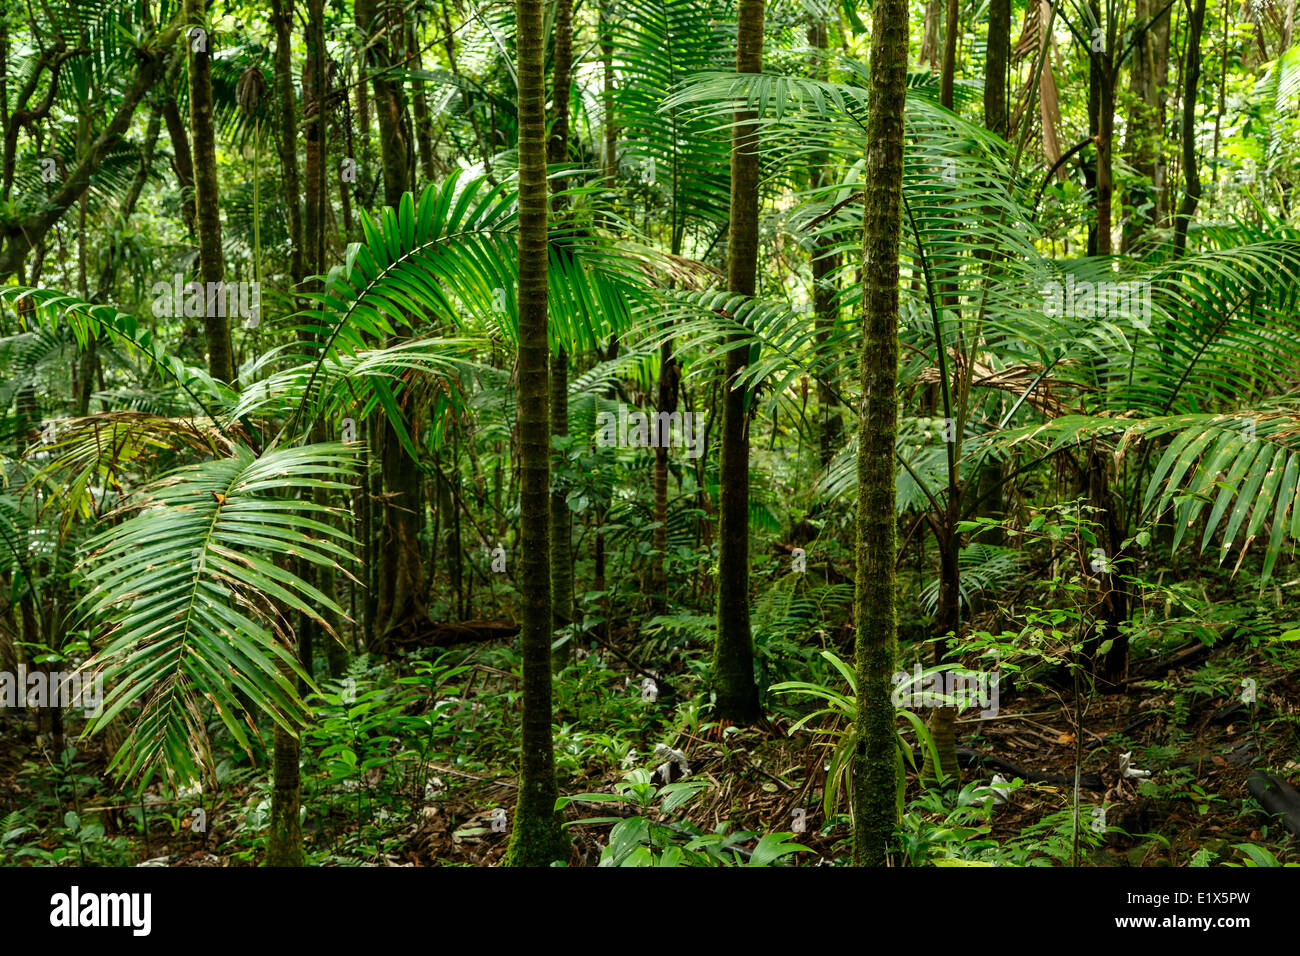 Forest scene, Caribbean National Forest (El Yunque rain forest), Puerto Rico - Stock Image